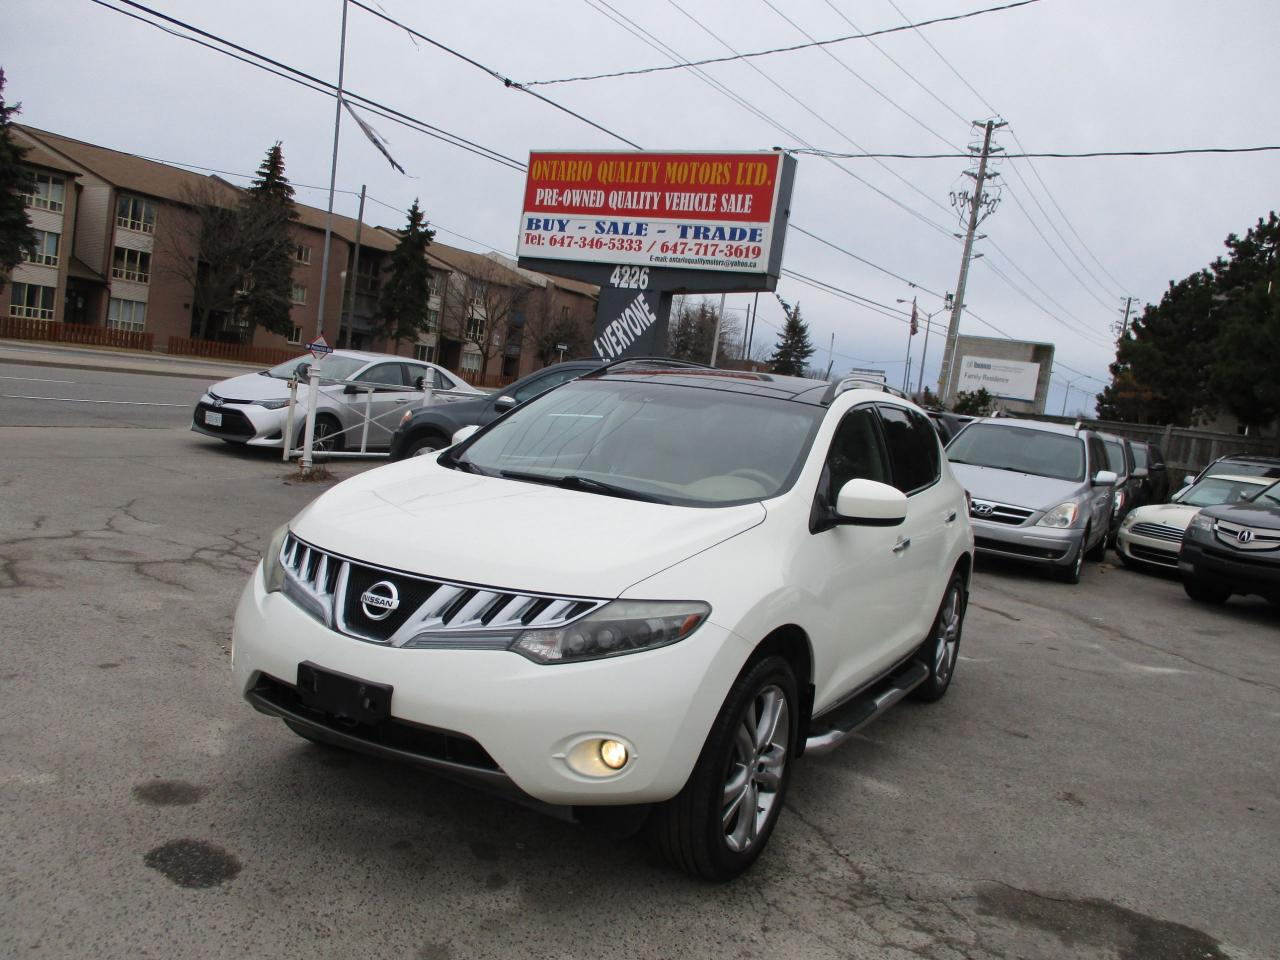 used 2009 nissan murano le panoramic roof leather sunroof for sale in scarborough ontario. Black Bedroom Furniture Sets. Home Design Ideas